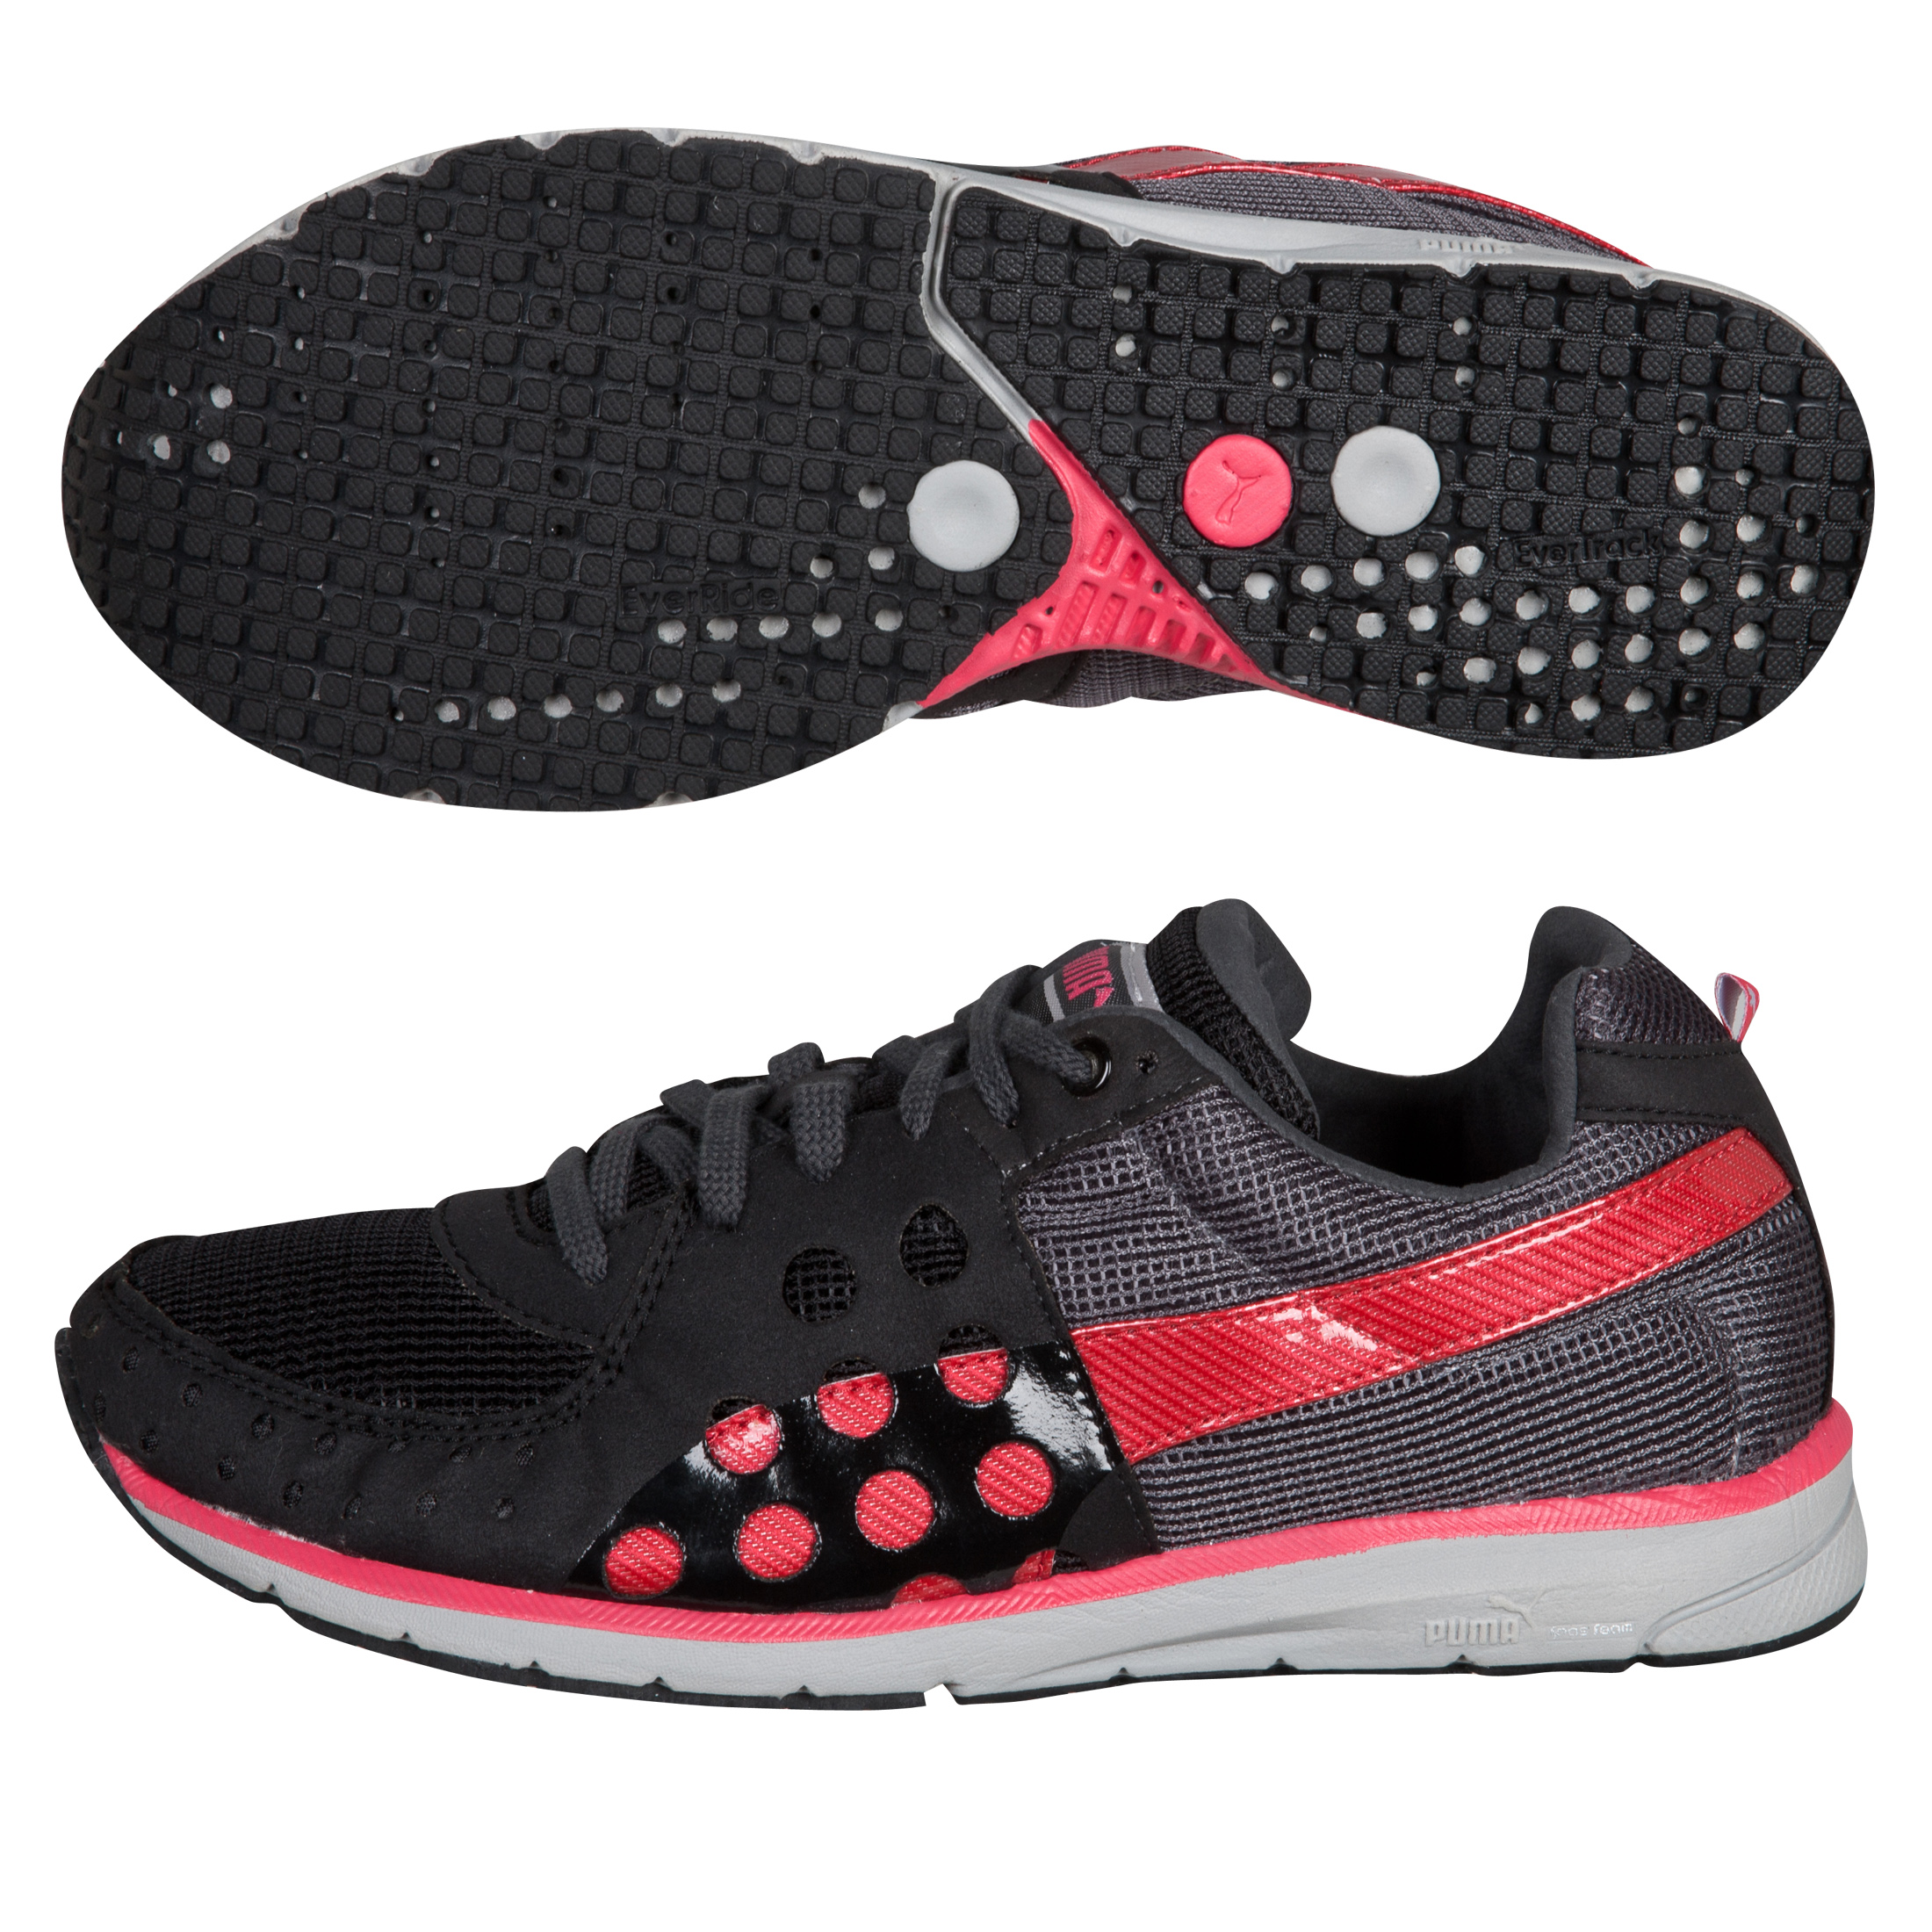 Puma Faas 300 Running Trainers - Black/Dark Shadow - Womens